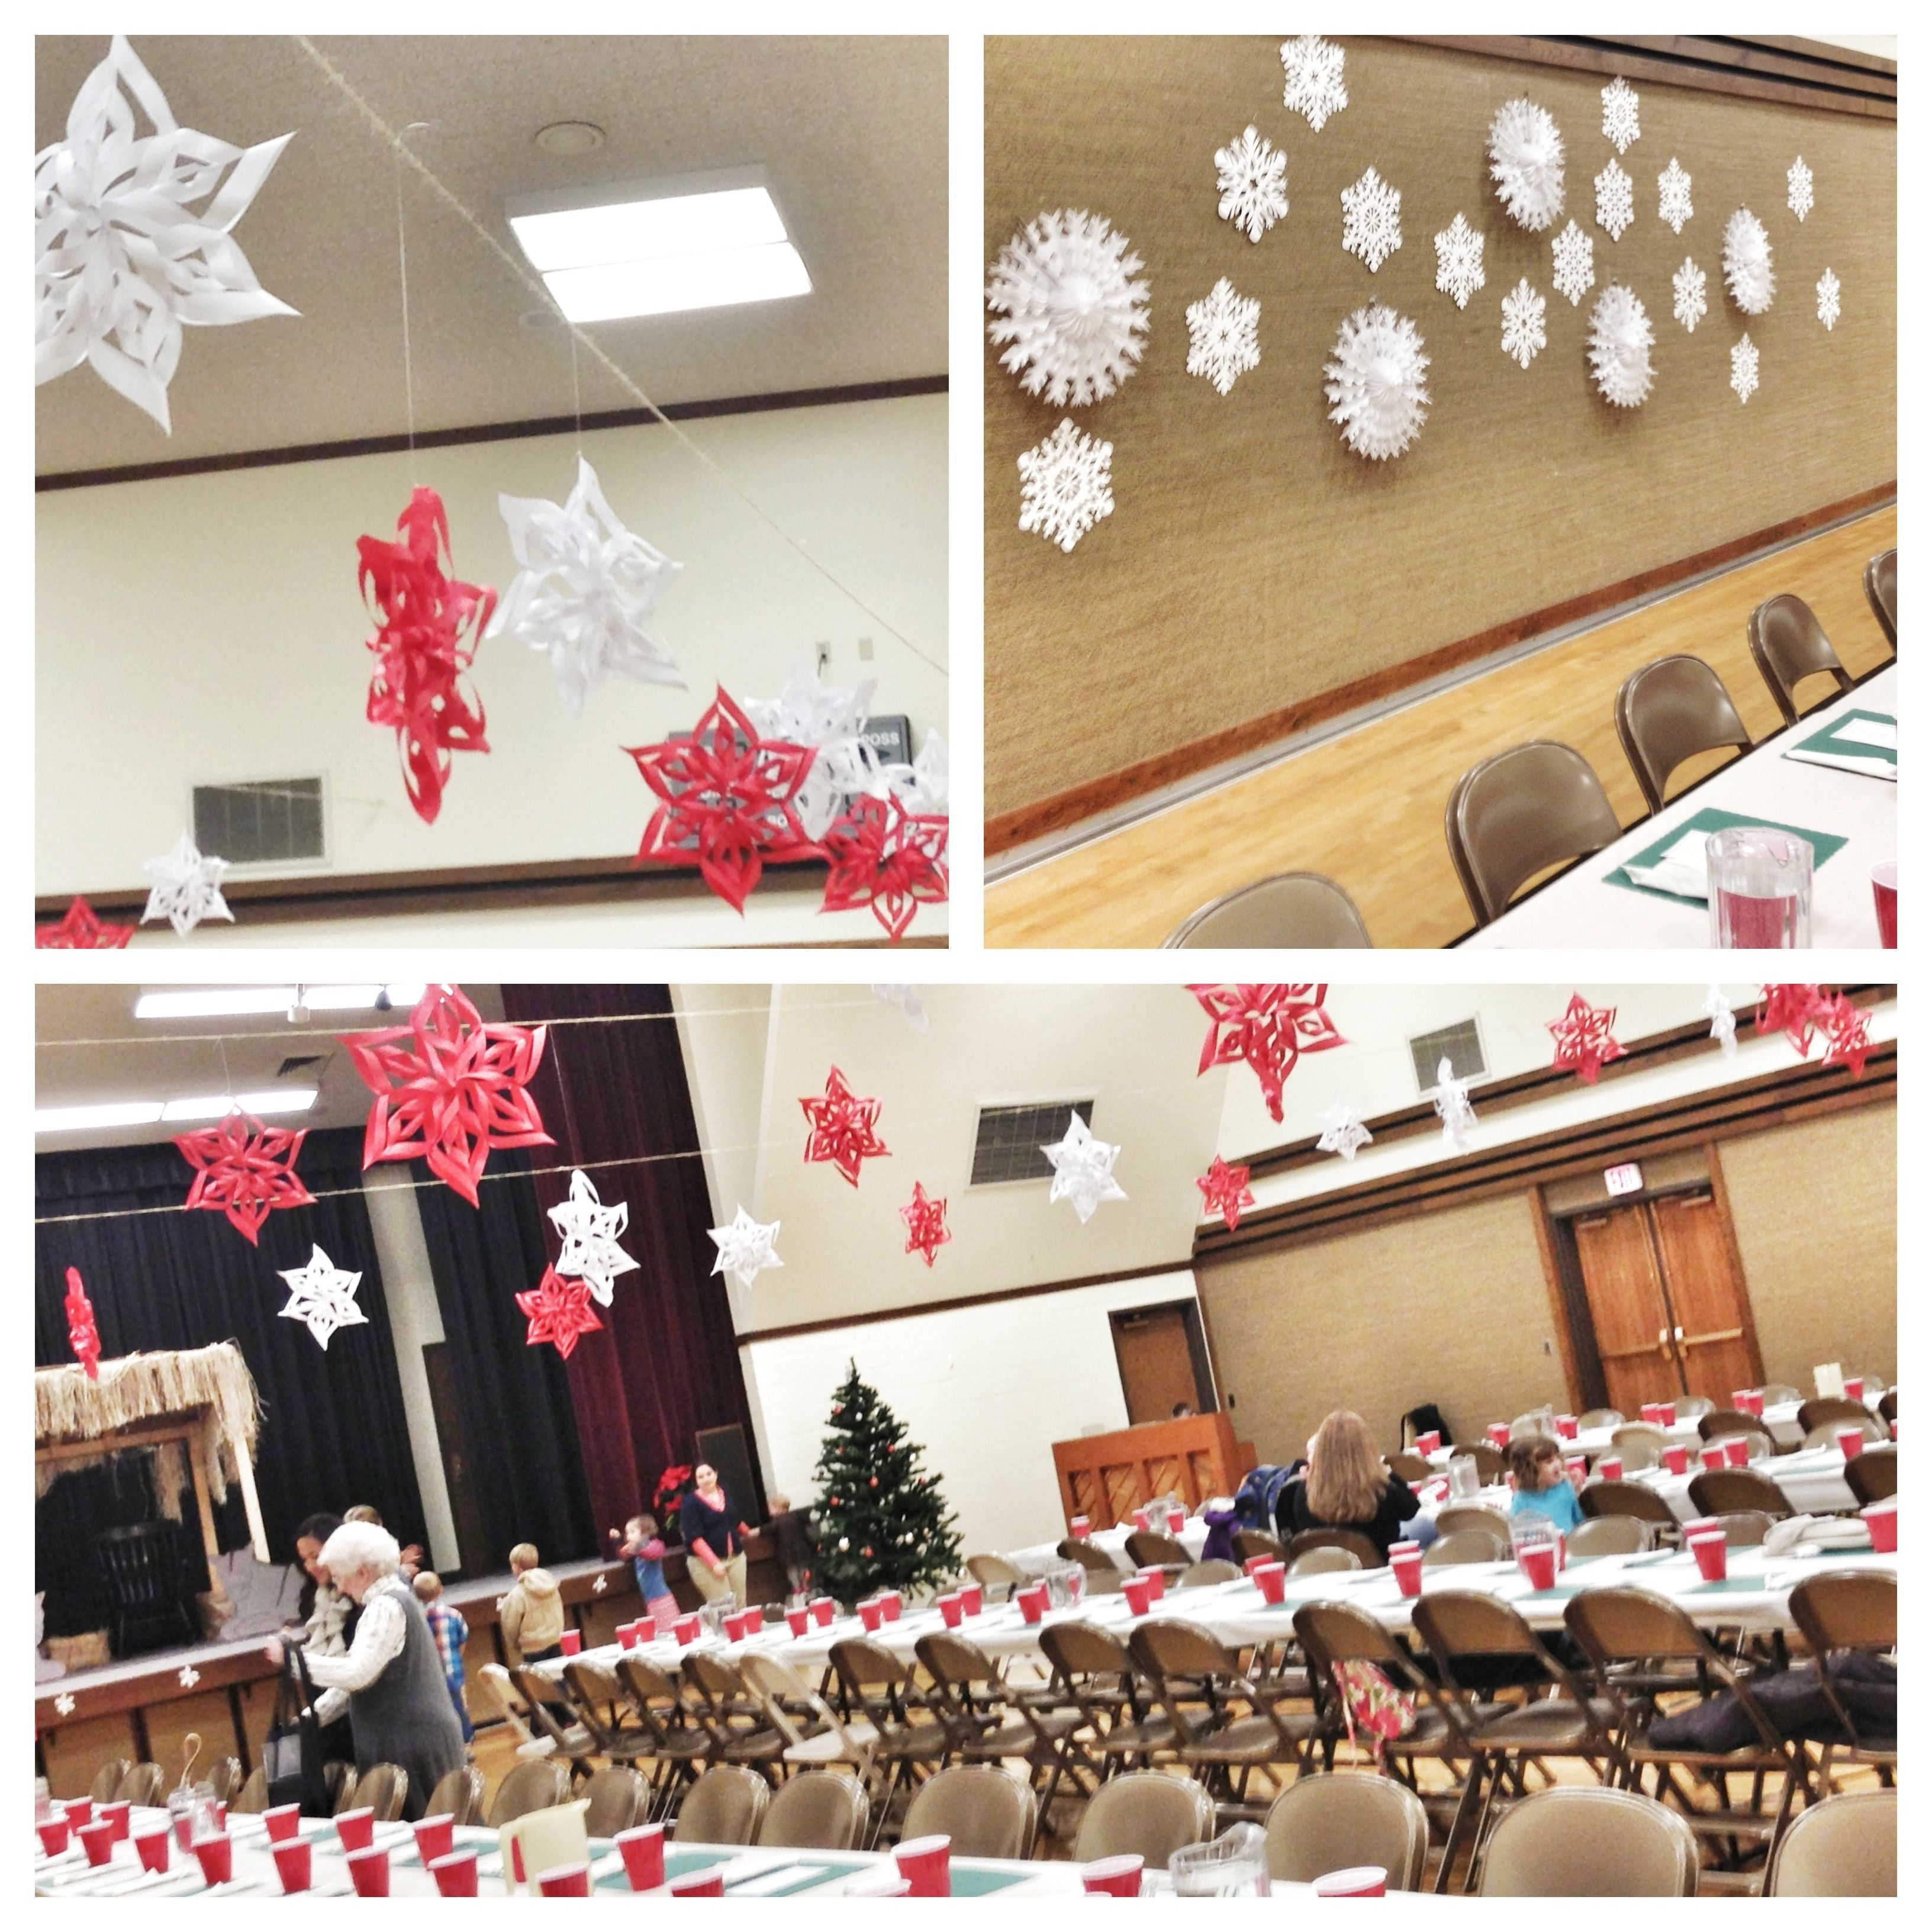 Most Popular Christmas Decorations On Pinterest To Pin: How To Decorate A Gym For A Christmas Party